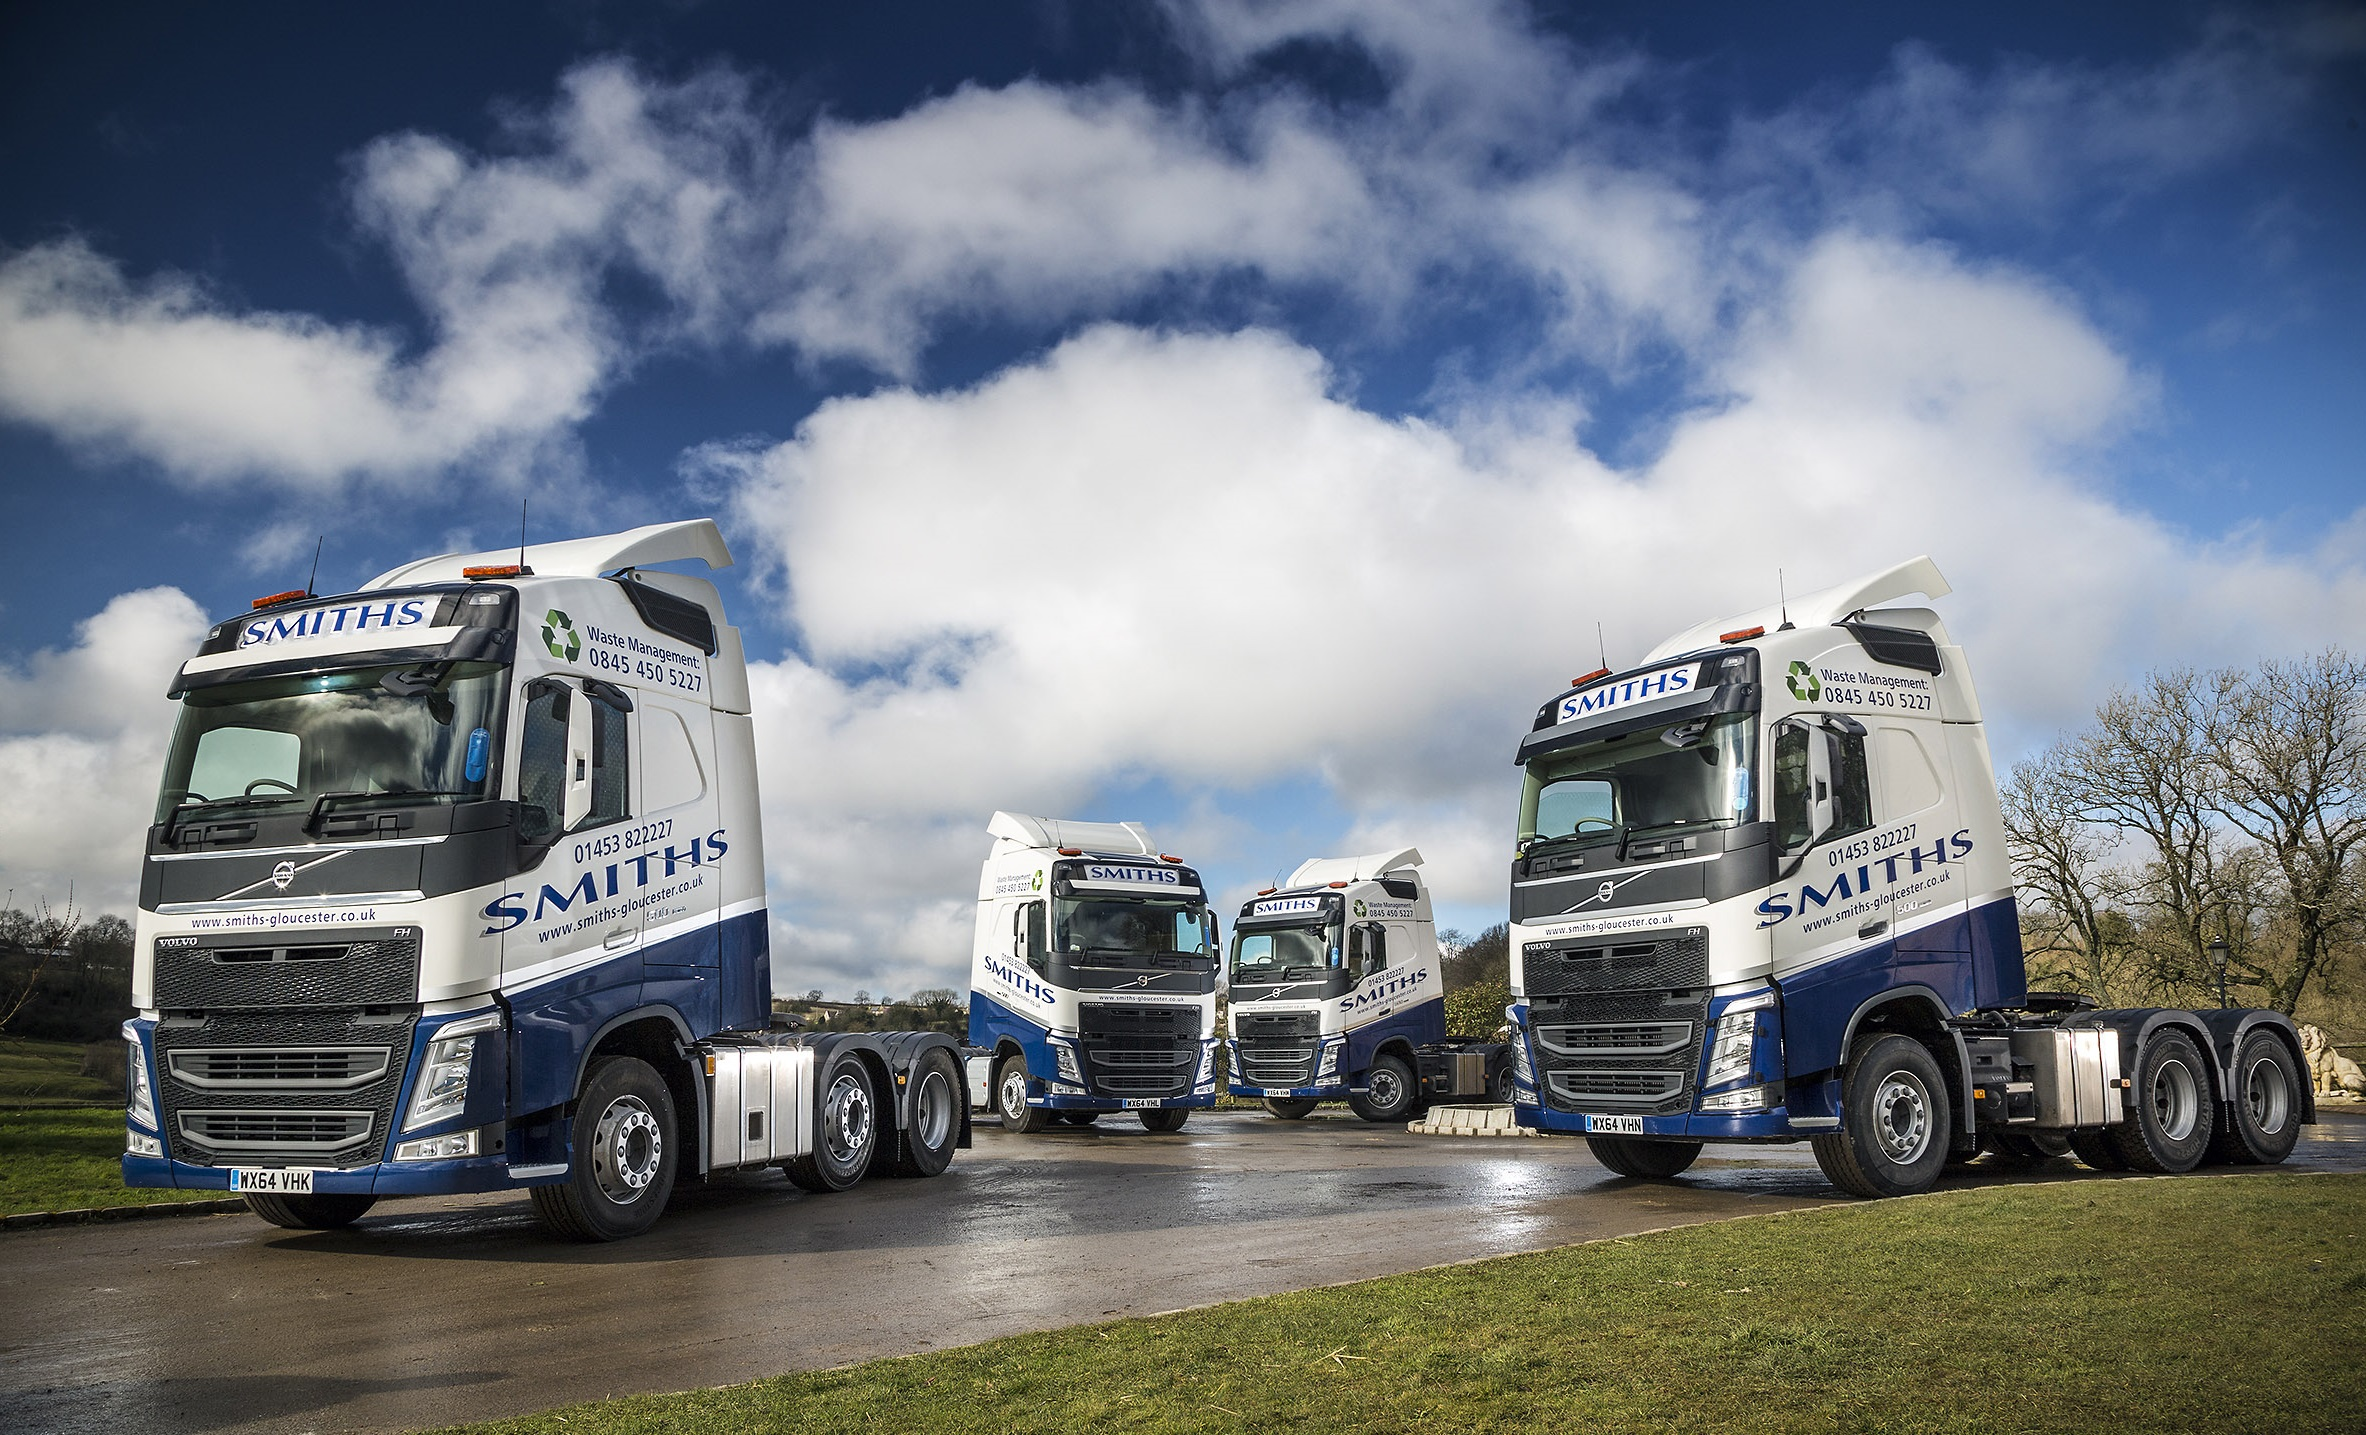 New Livery Rolled Out On First New Trucks For Smiths